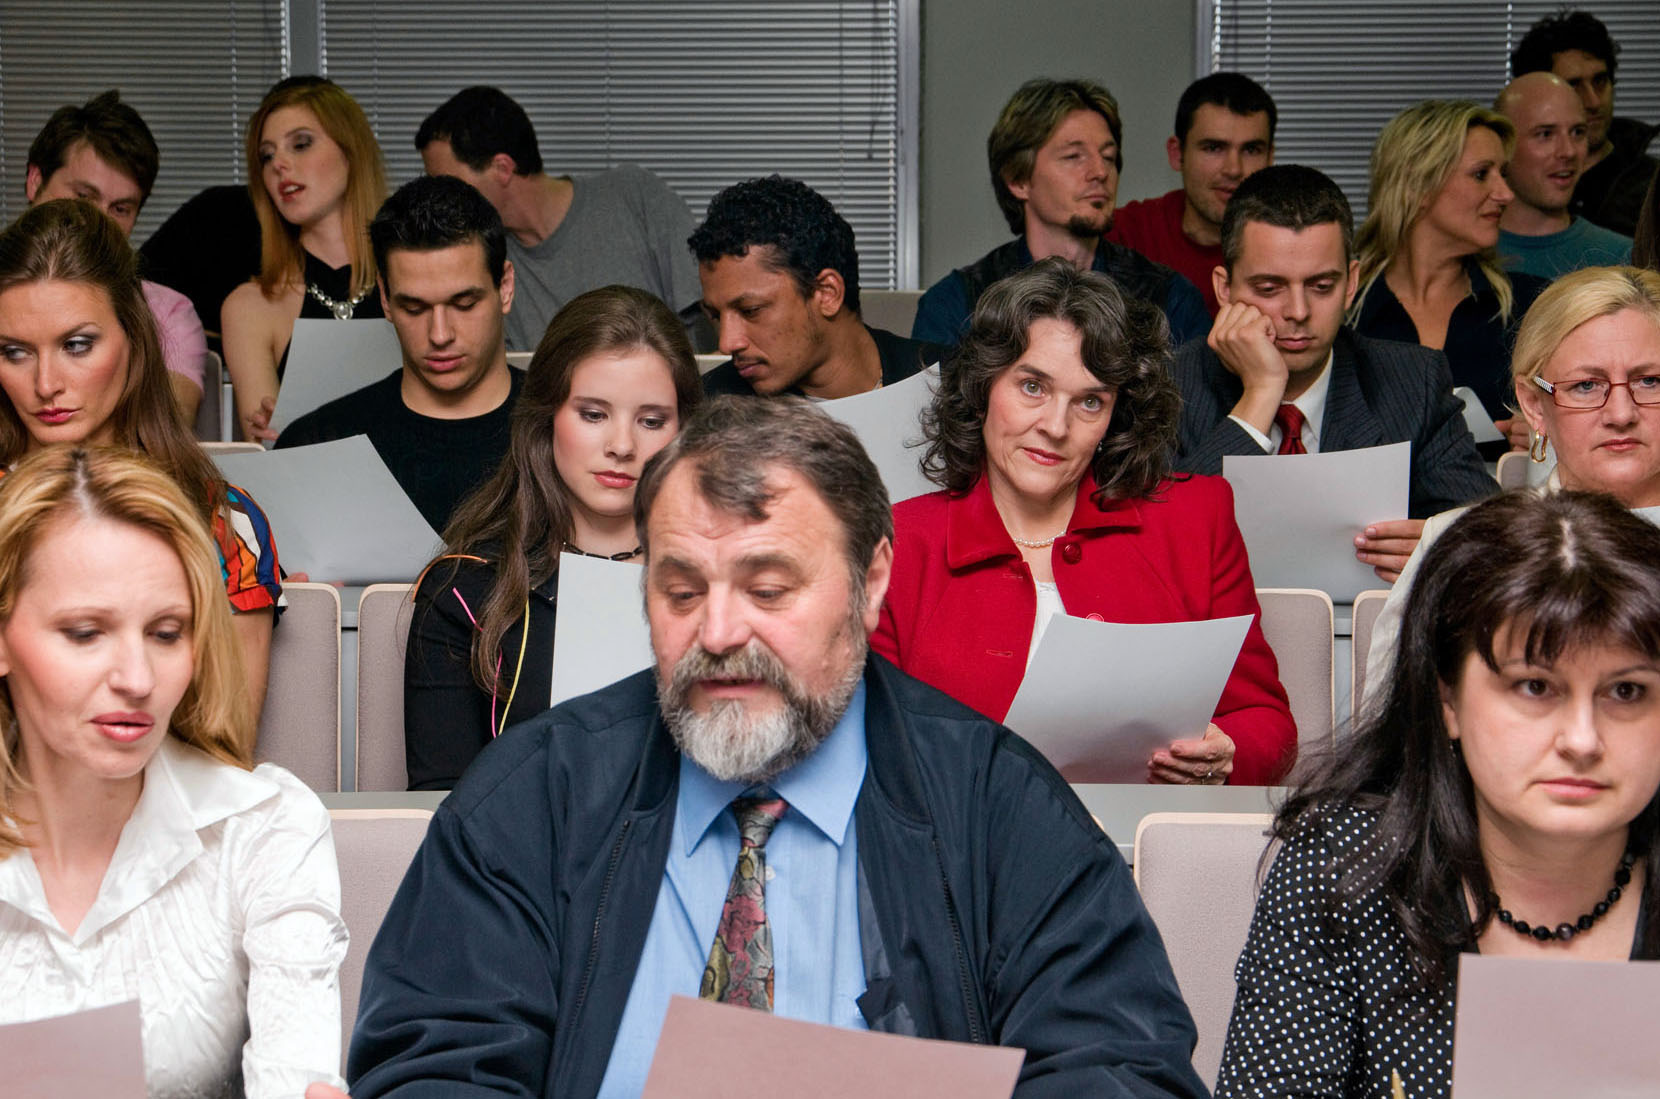 Adult Learners Seated in Classroom Reading Paper